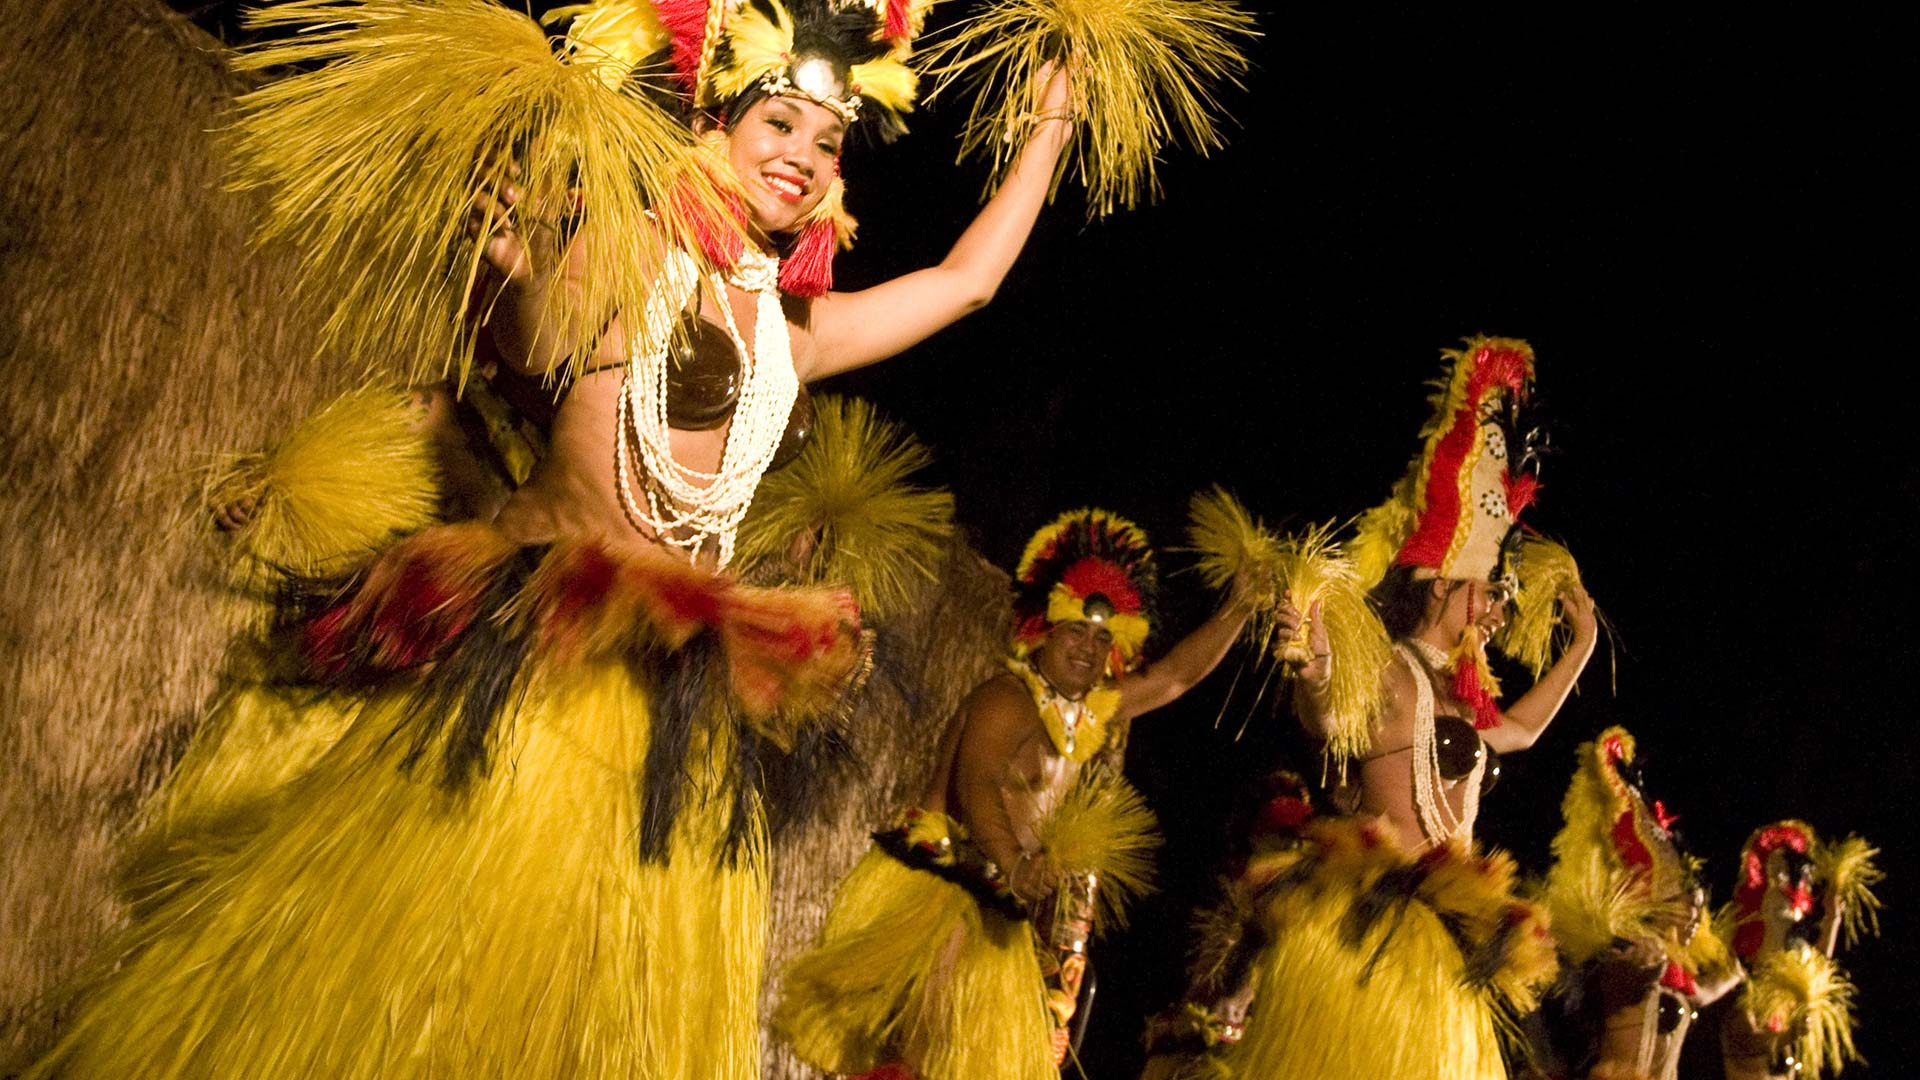 group of people dancing Hawaiian during nighttime